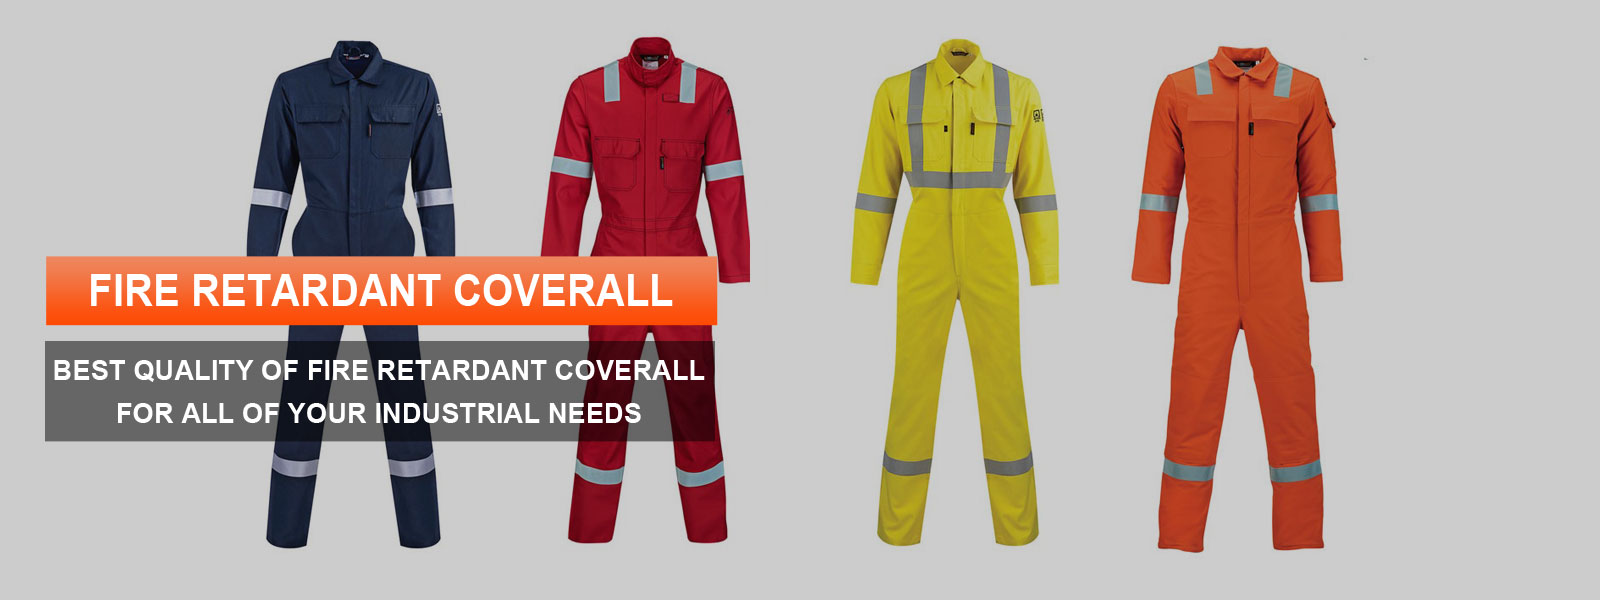 Fire Retardant Coverall Manufacturers in Antigua